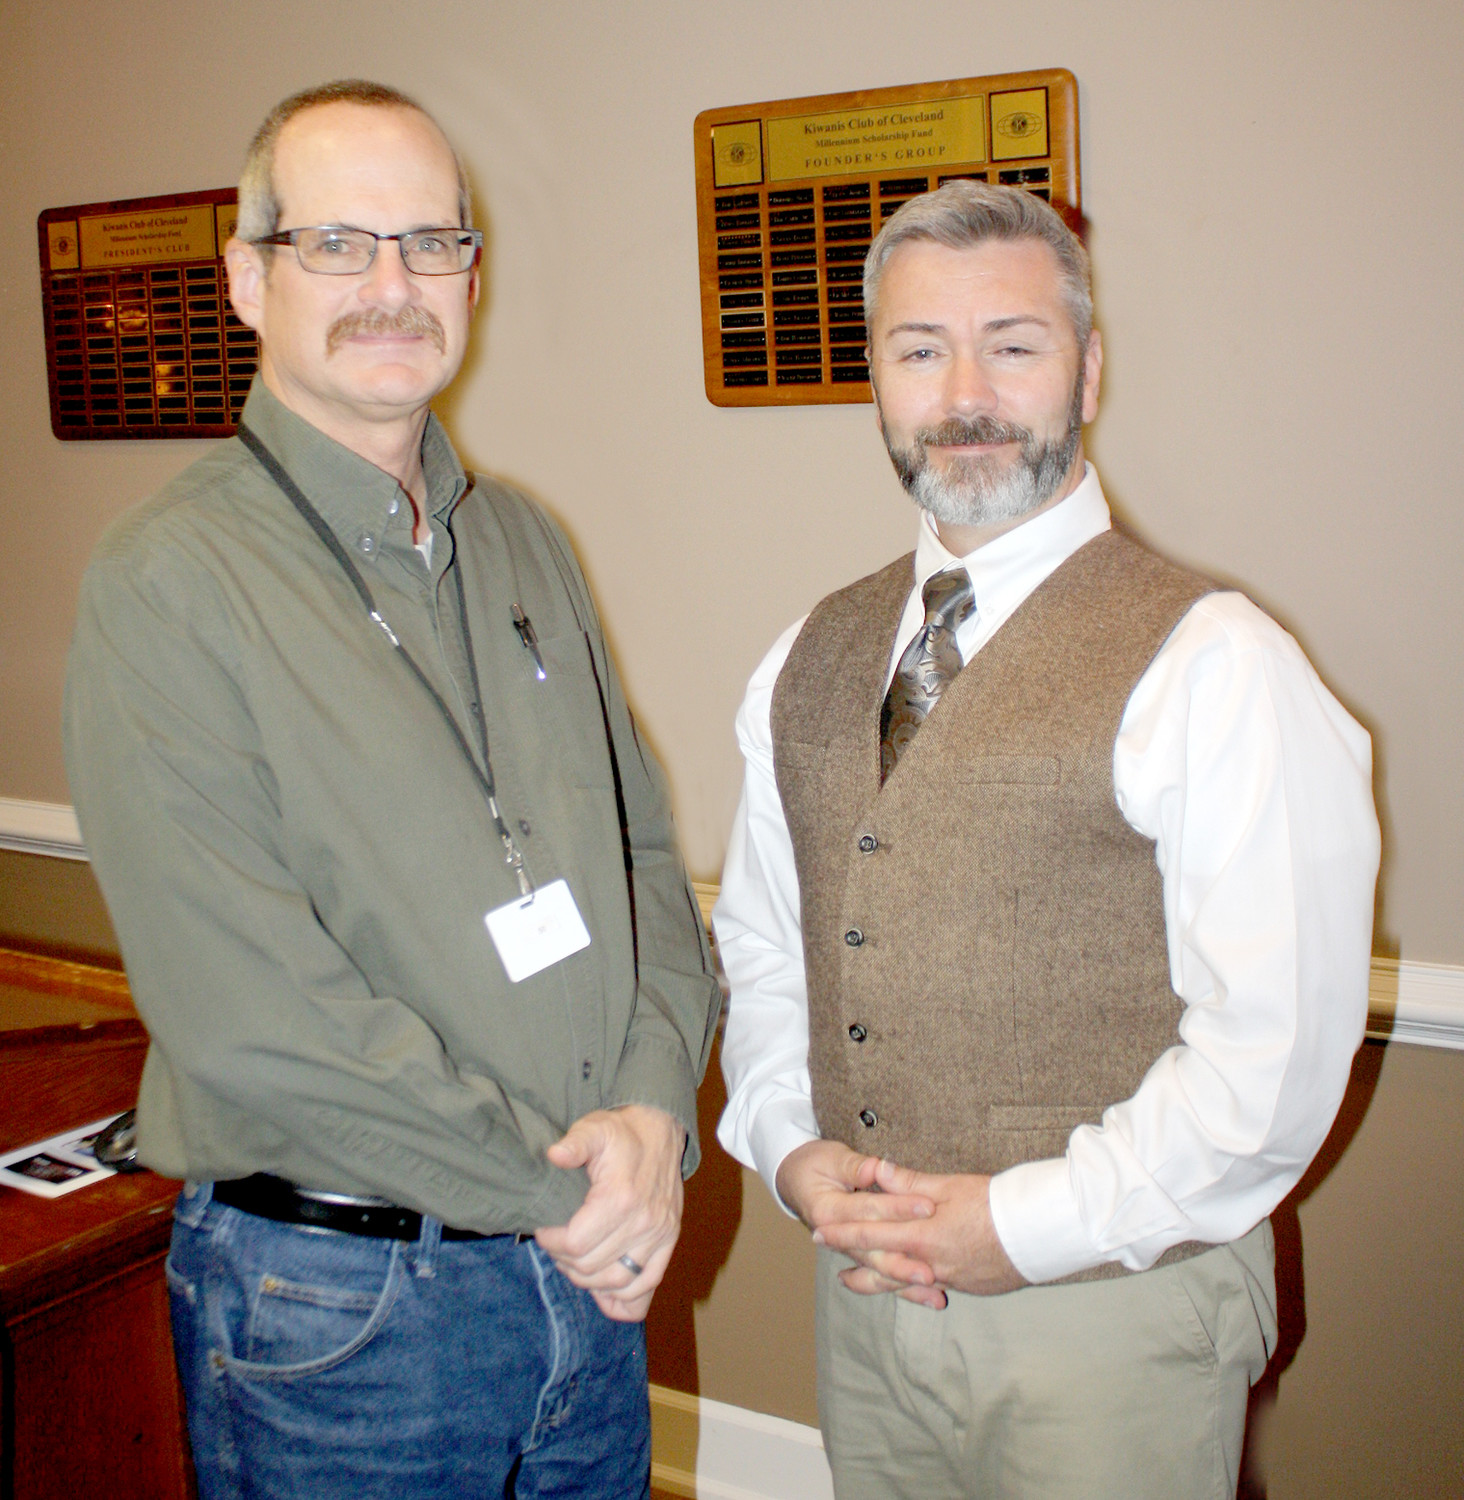 RAMON TORRES, left, of the Cleveland Kiwanis Club, is shown with this week's guest speaker, Michael MacDonald of VET-COM.Org.